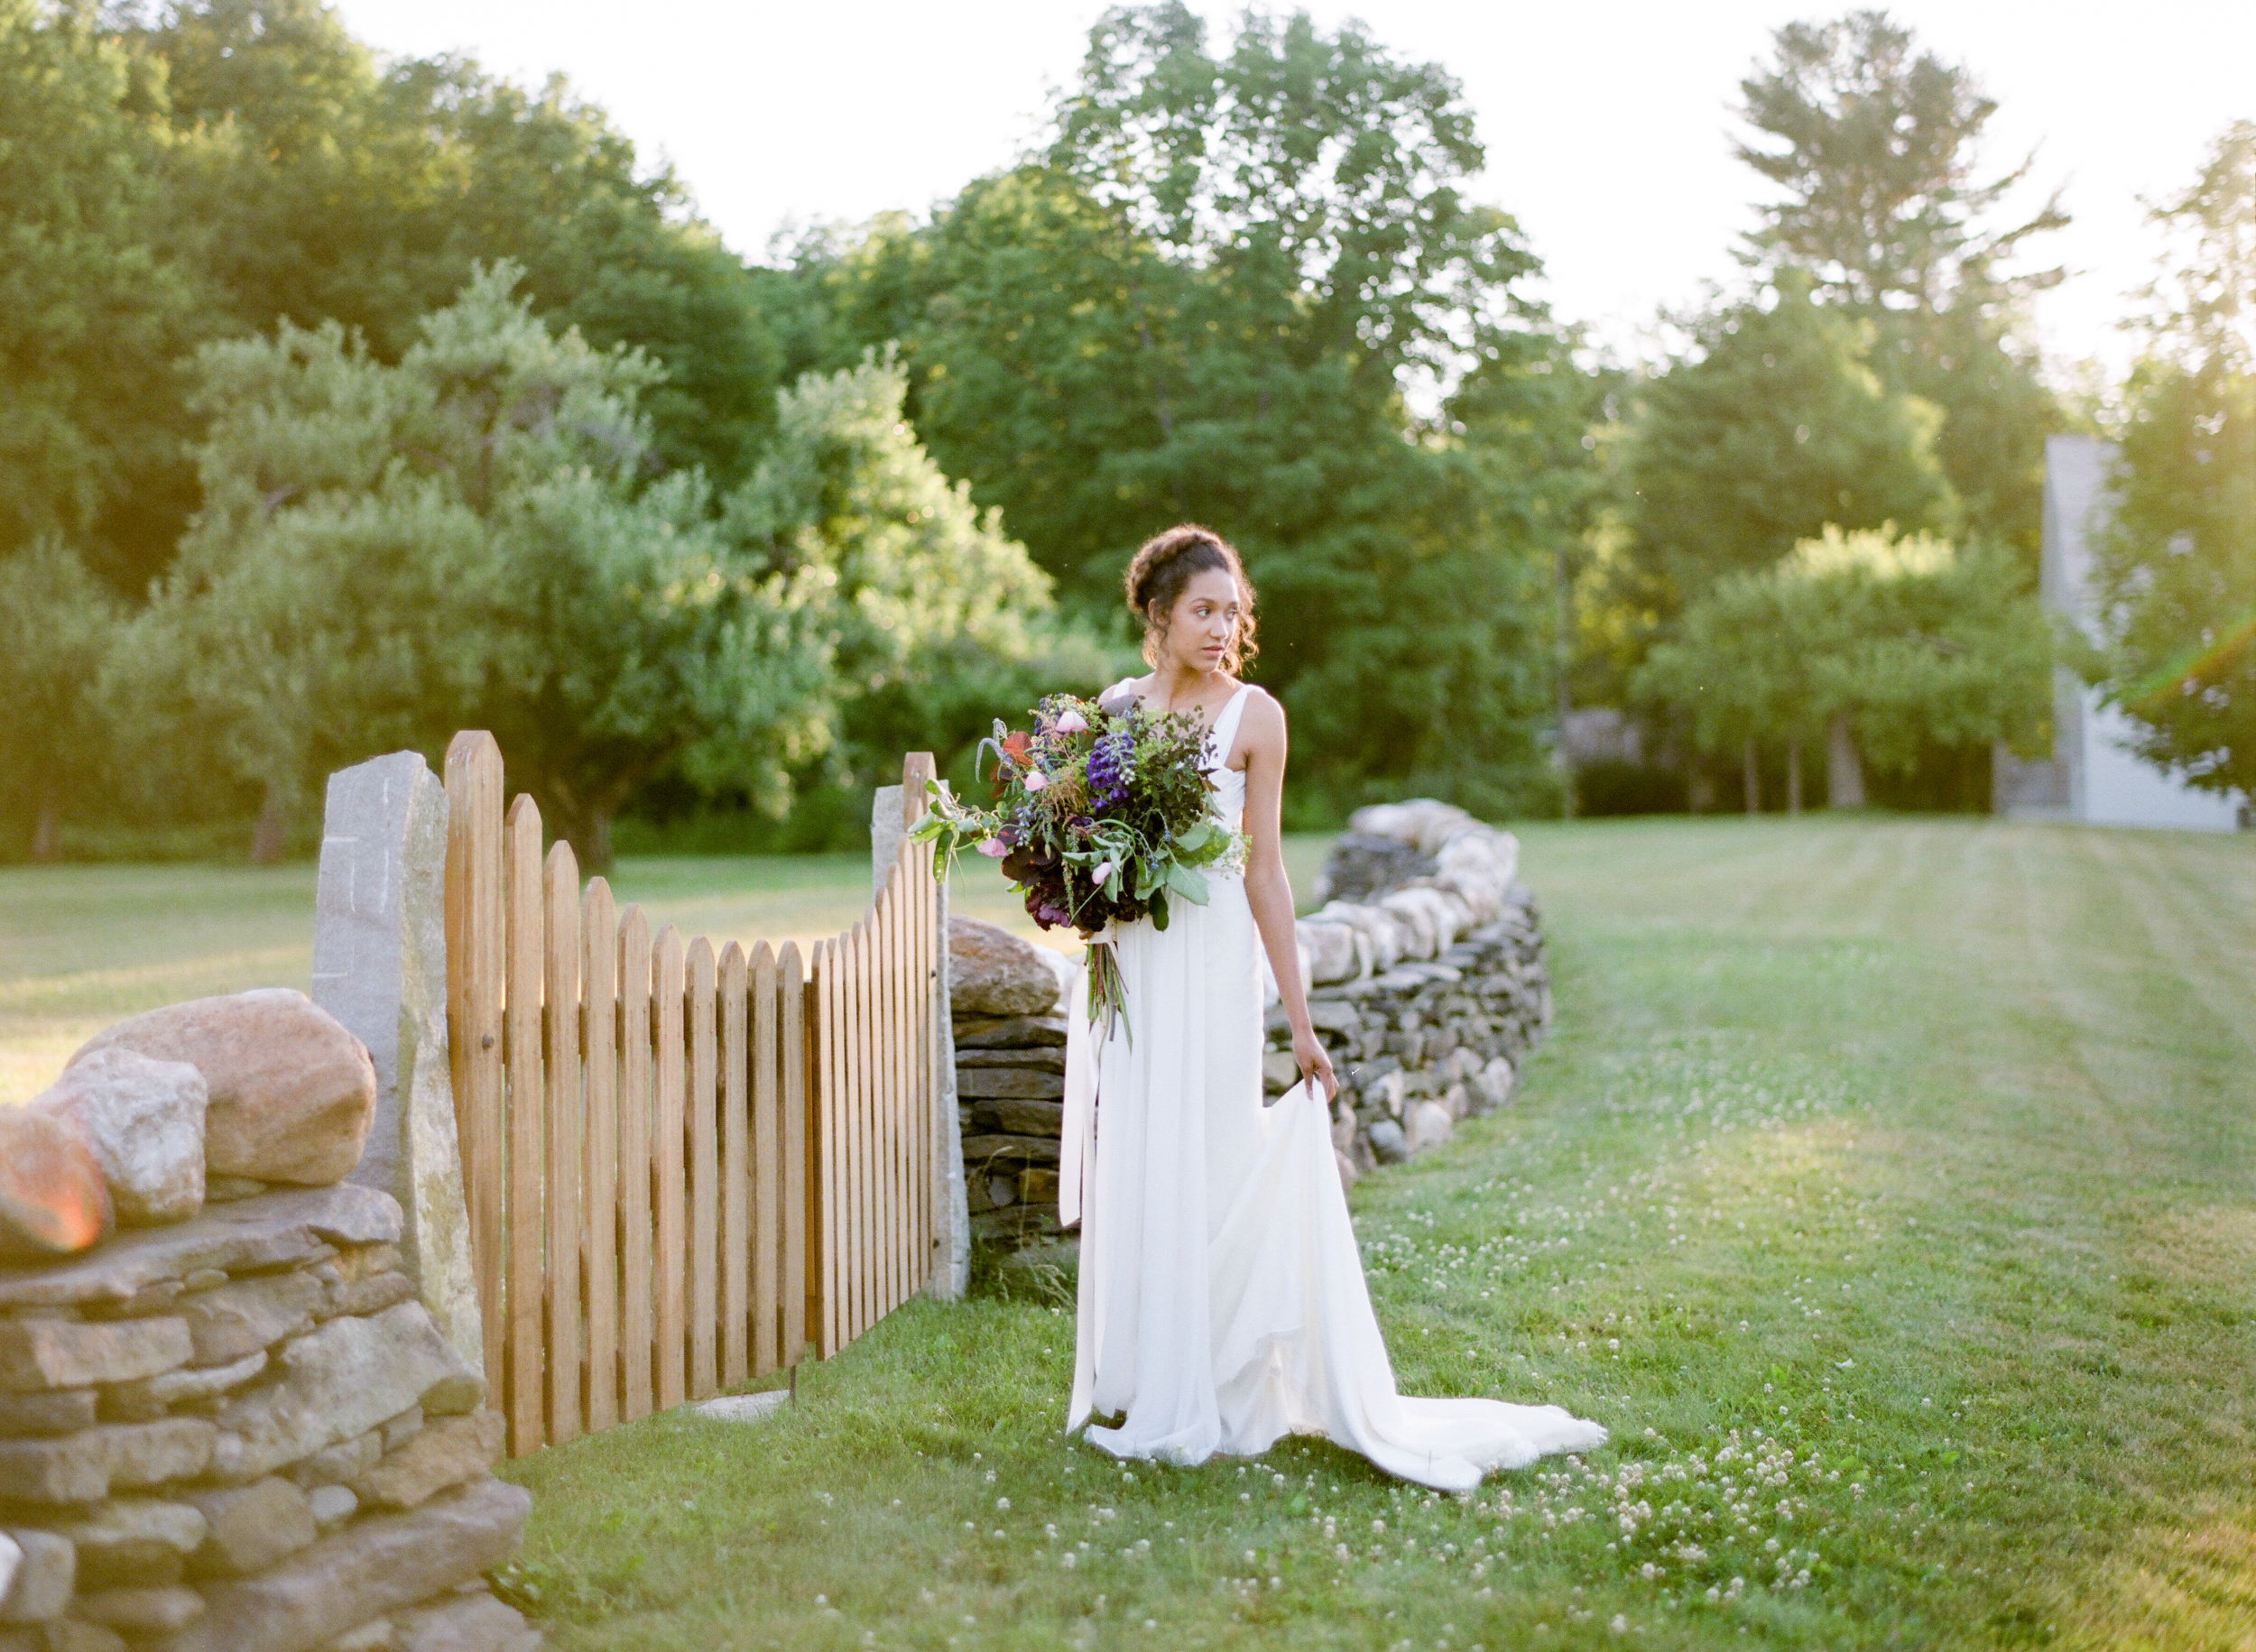 Artisitc Wedding Photography in MA